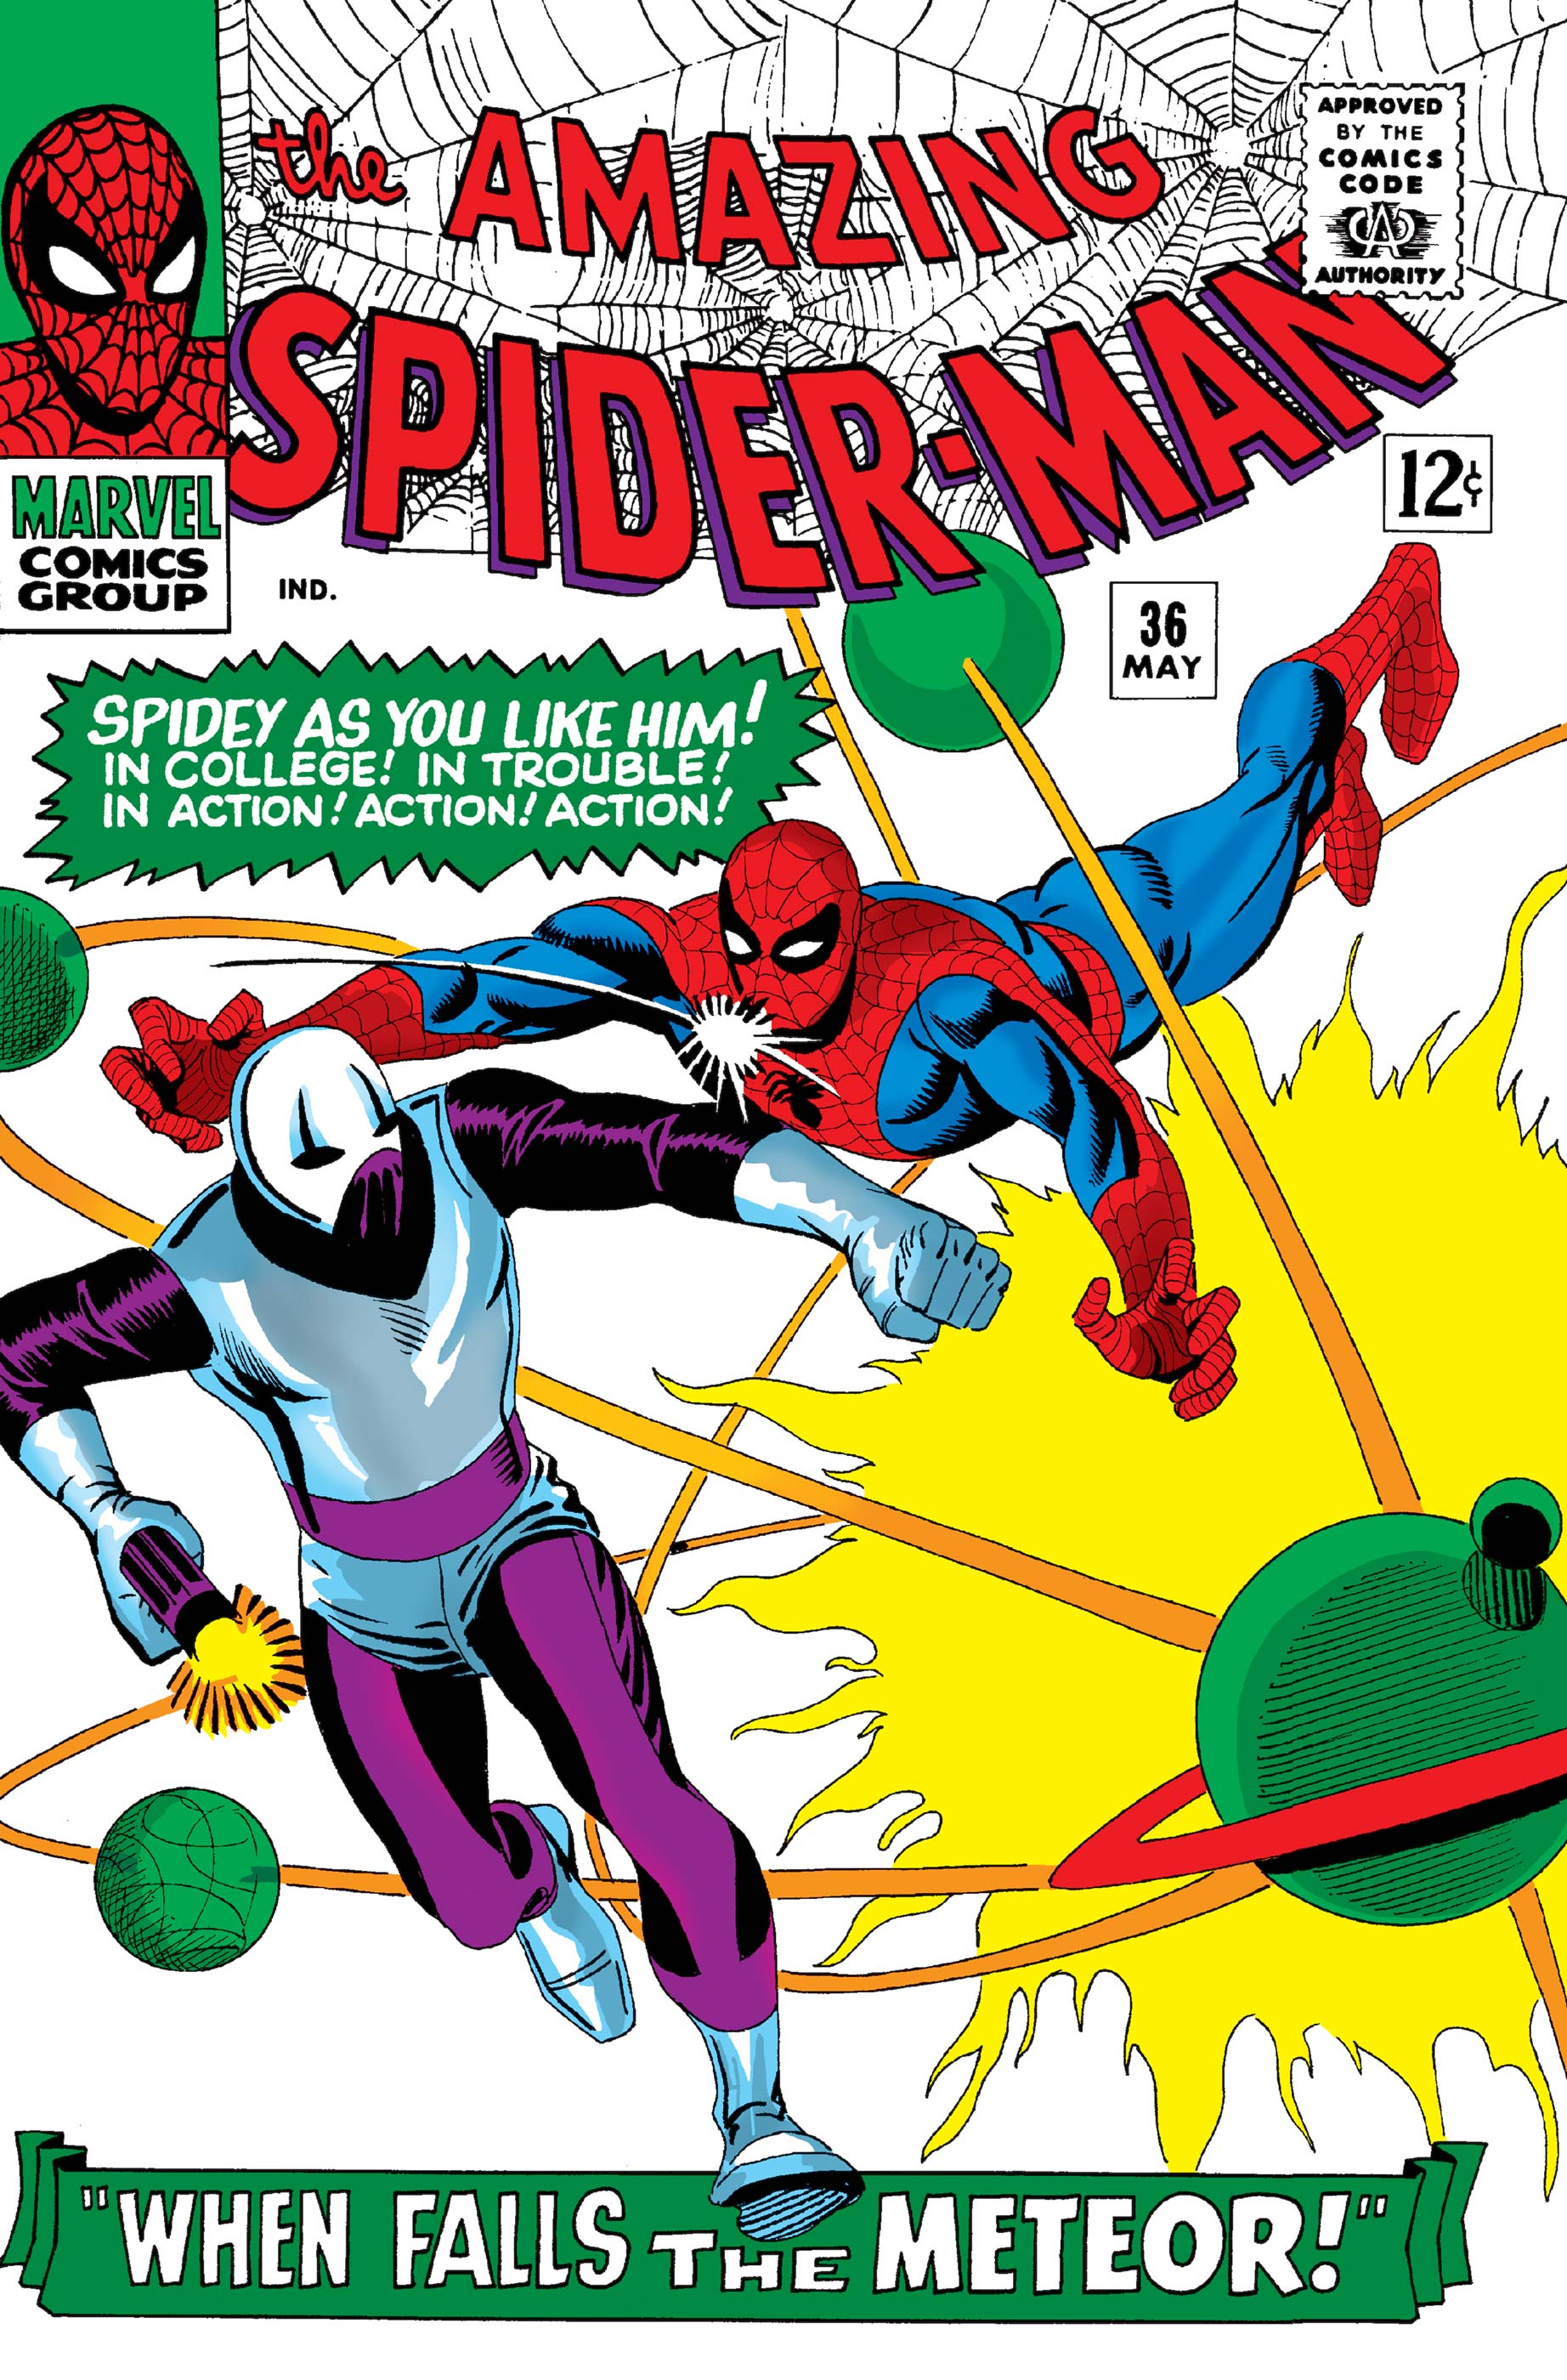 The Amazing Spider-Man (1963) #36